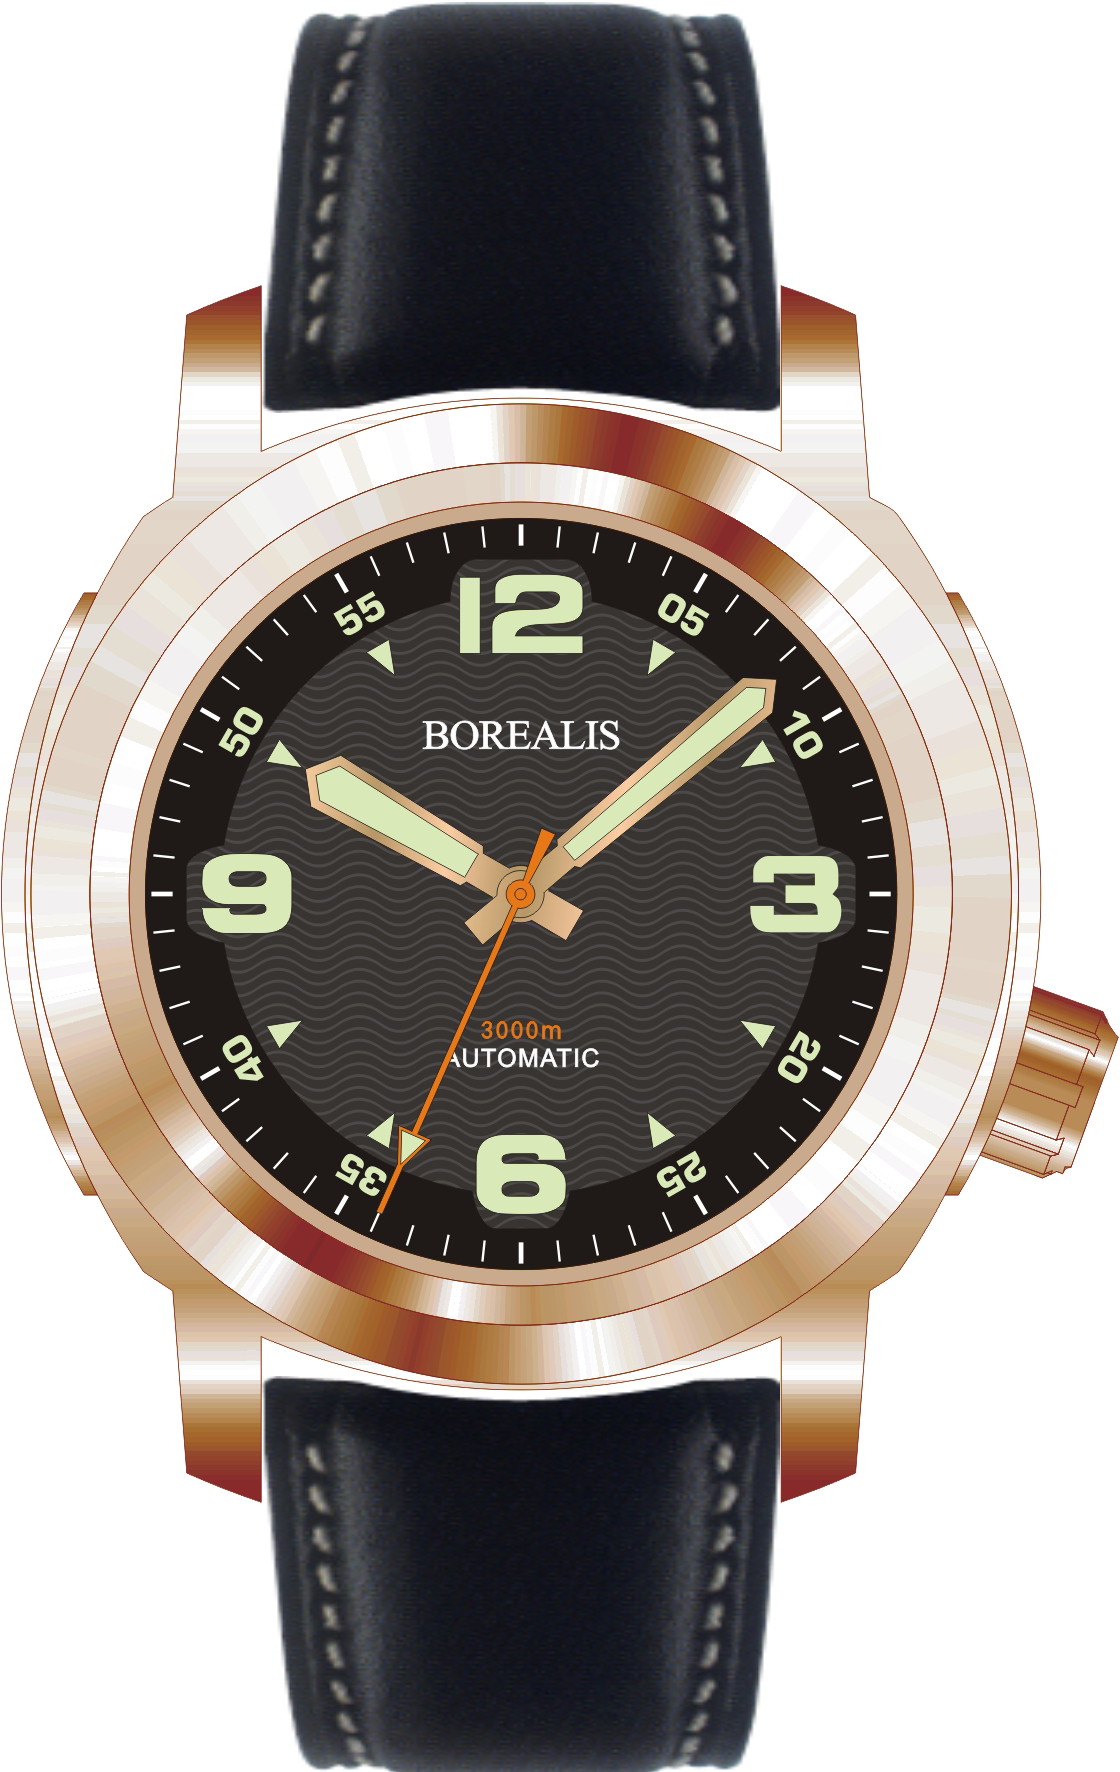 Borealis Batial Bronze CuSn8 Black 3000m Miyota 9015 Automatic Diver Watch No Date Display